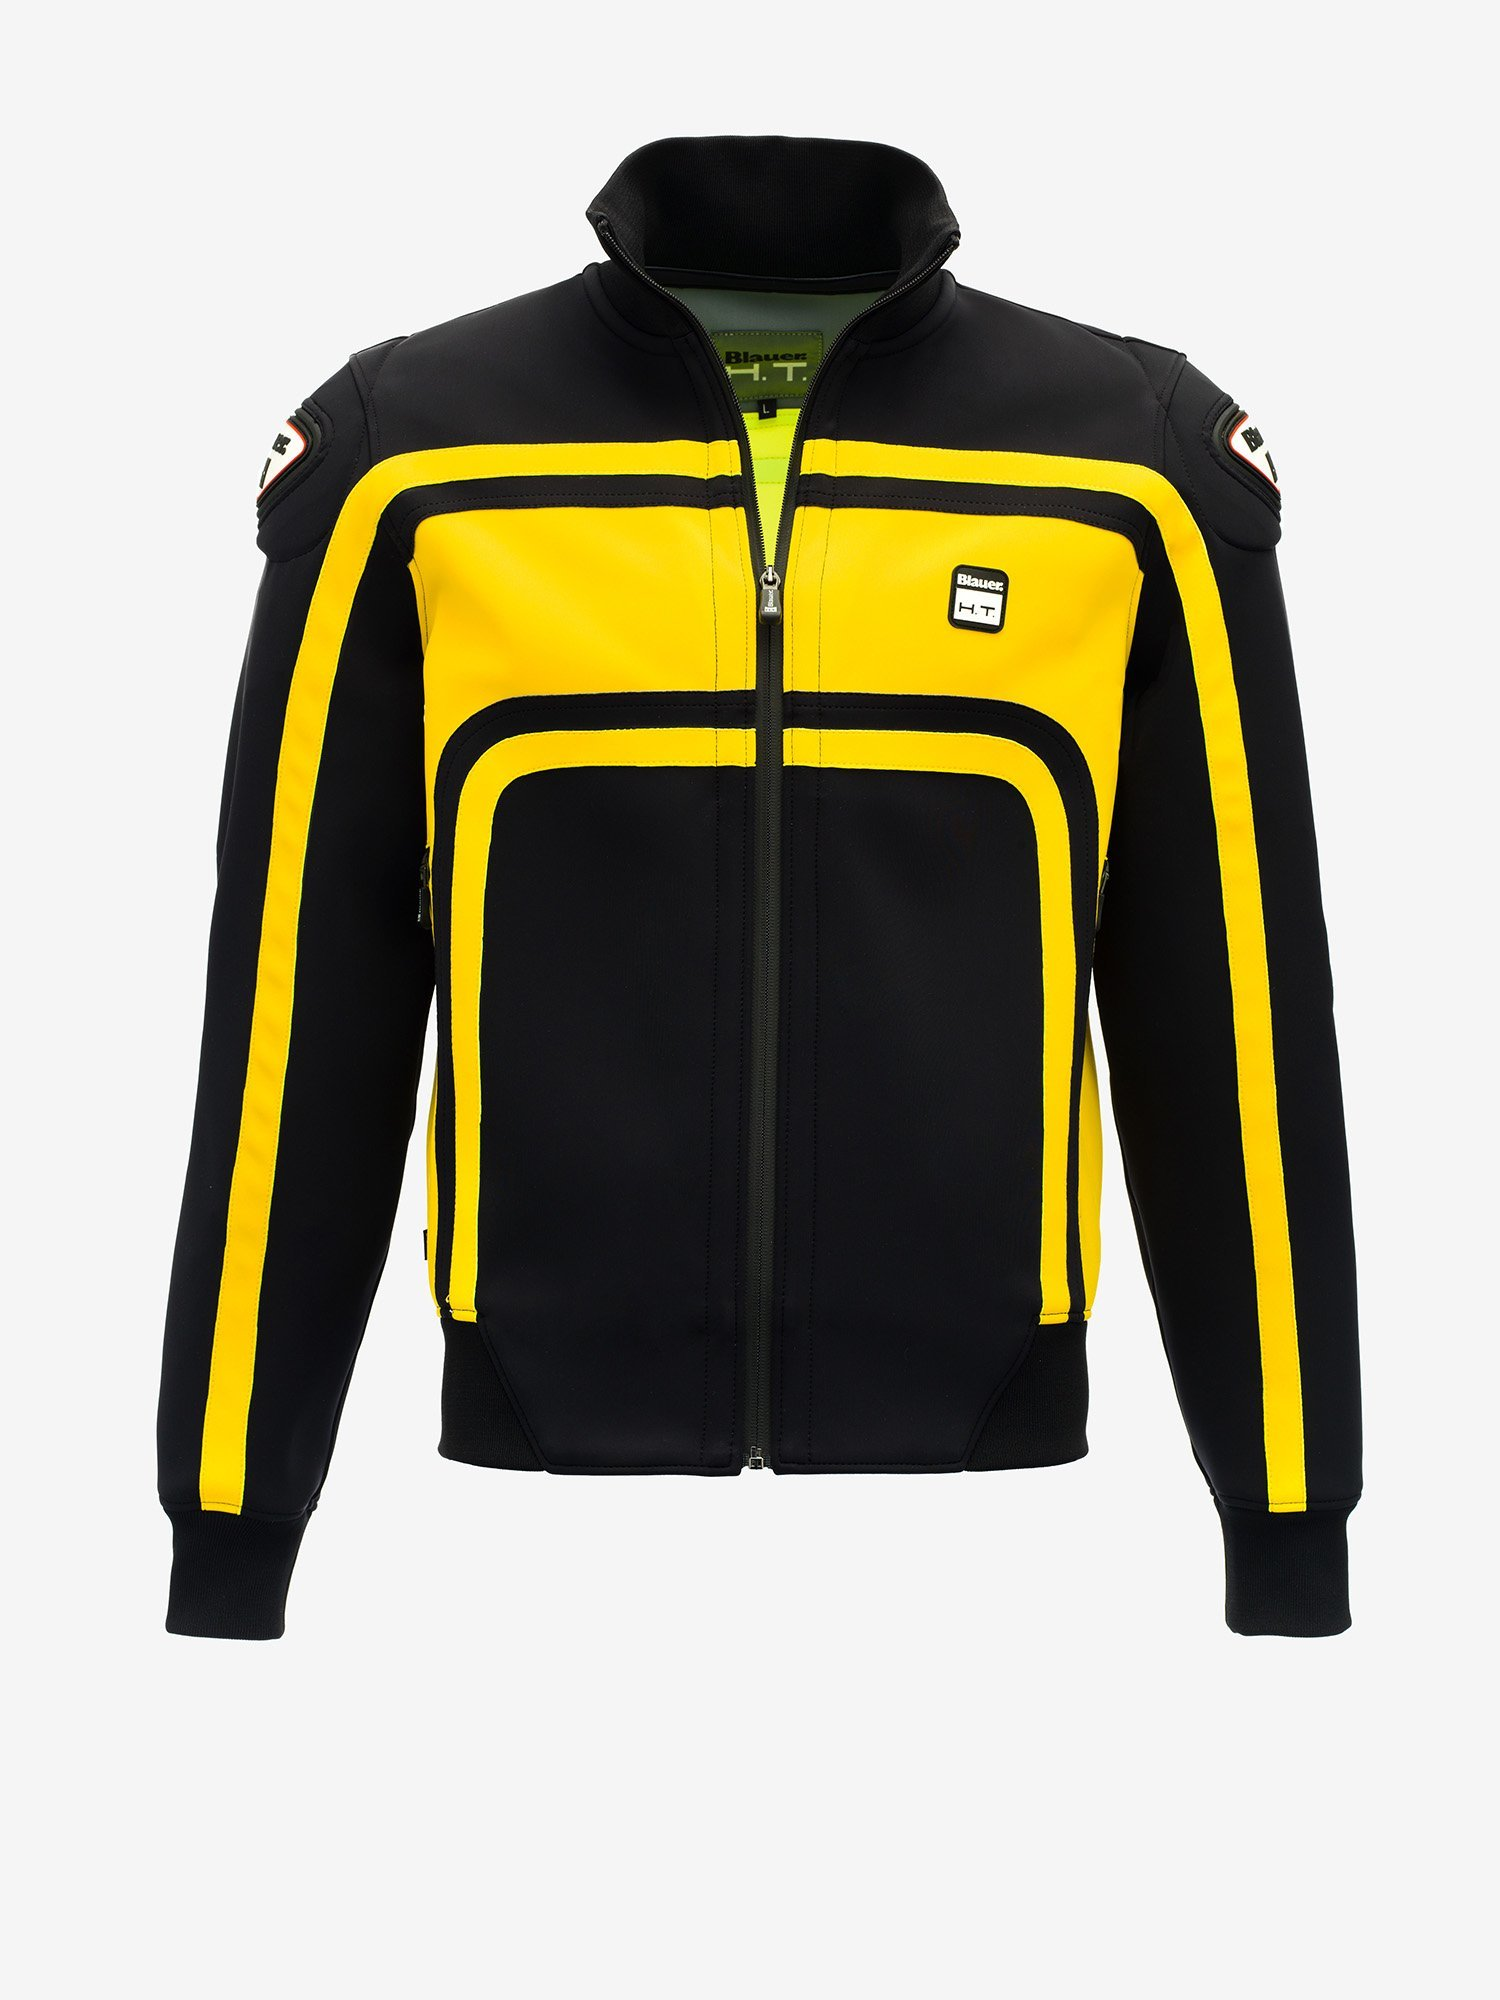 EASY RIDER YELLOW - Blauer